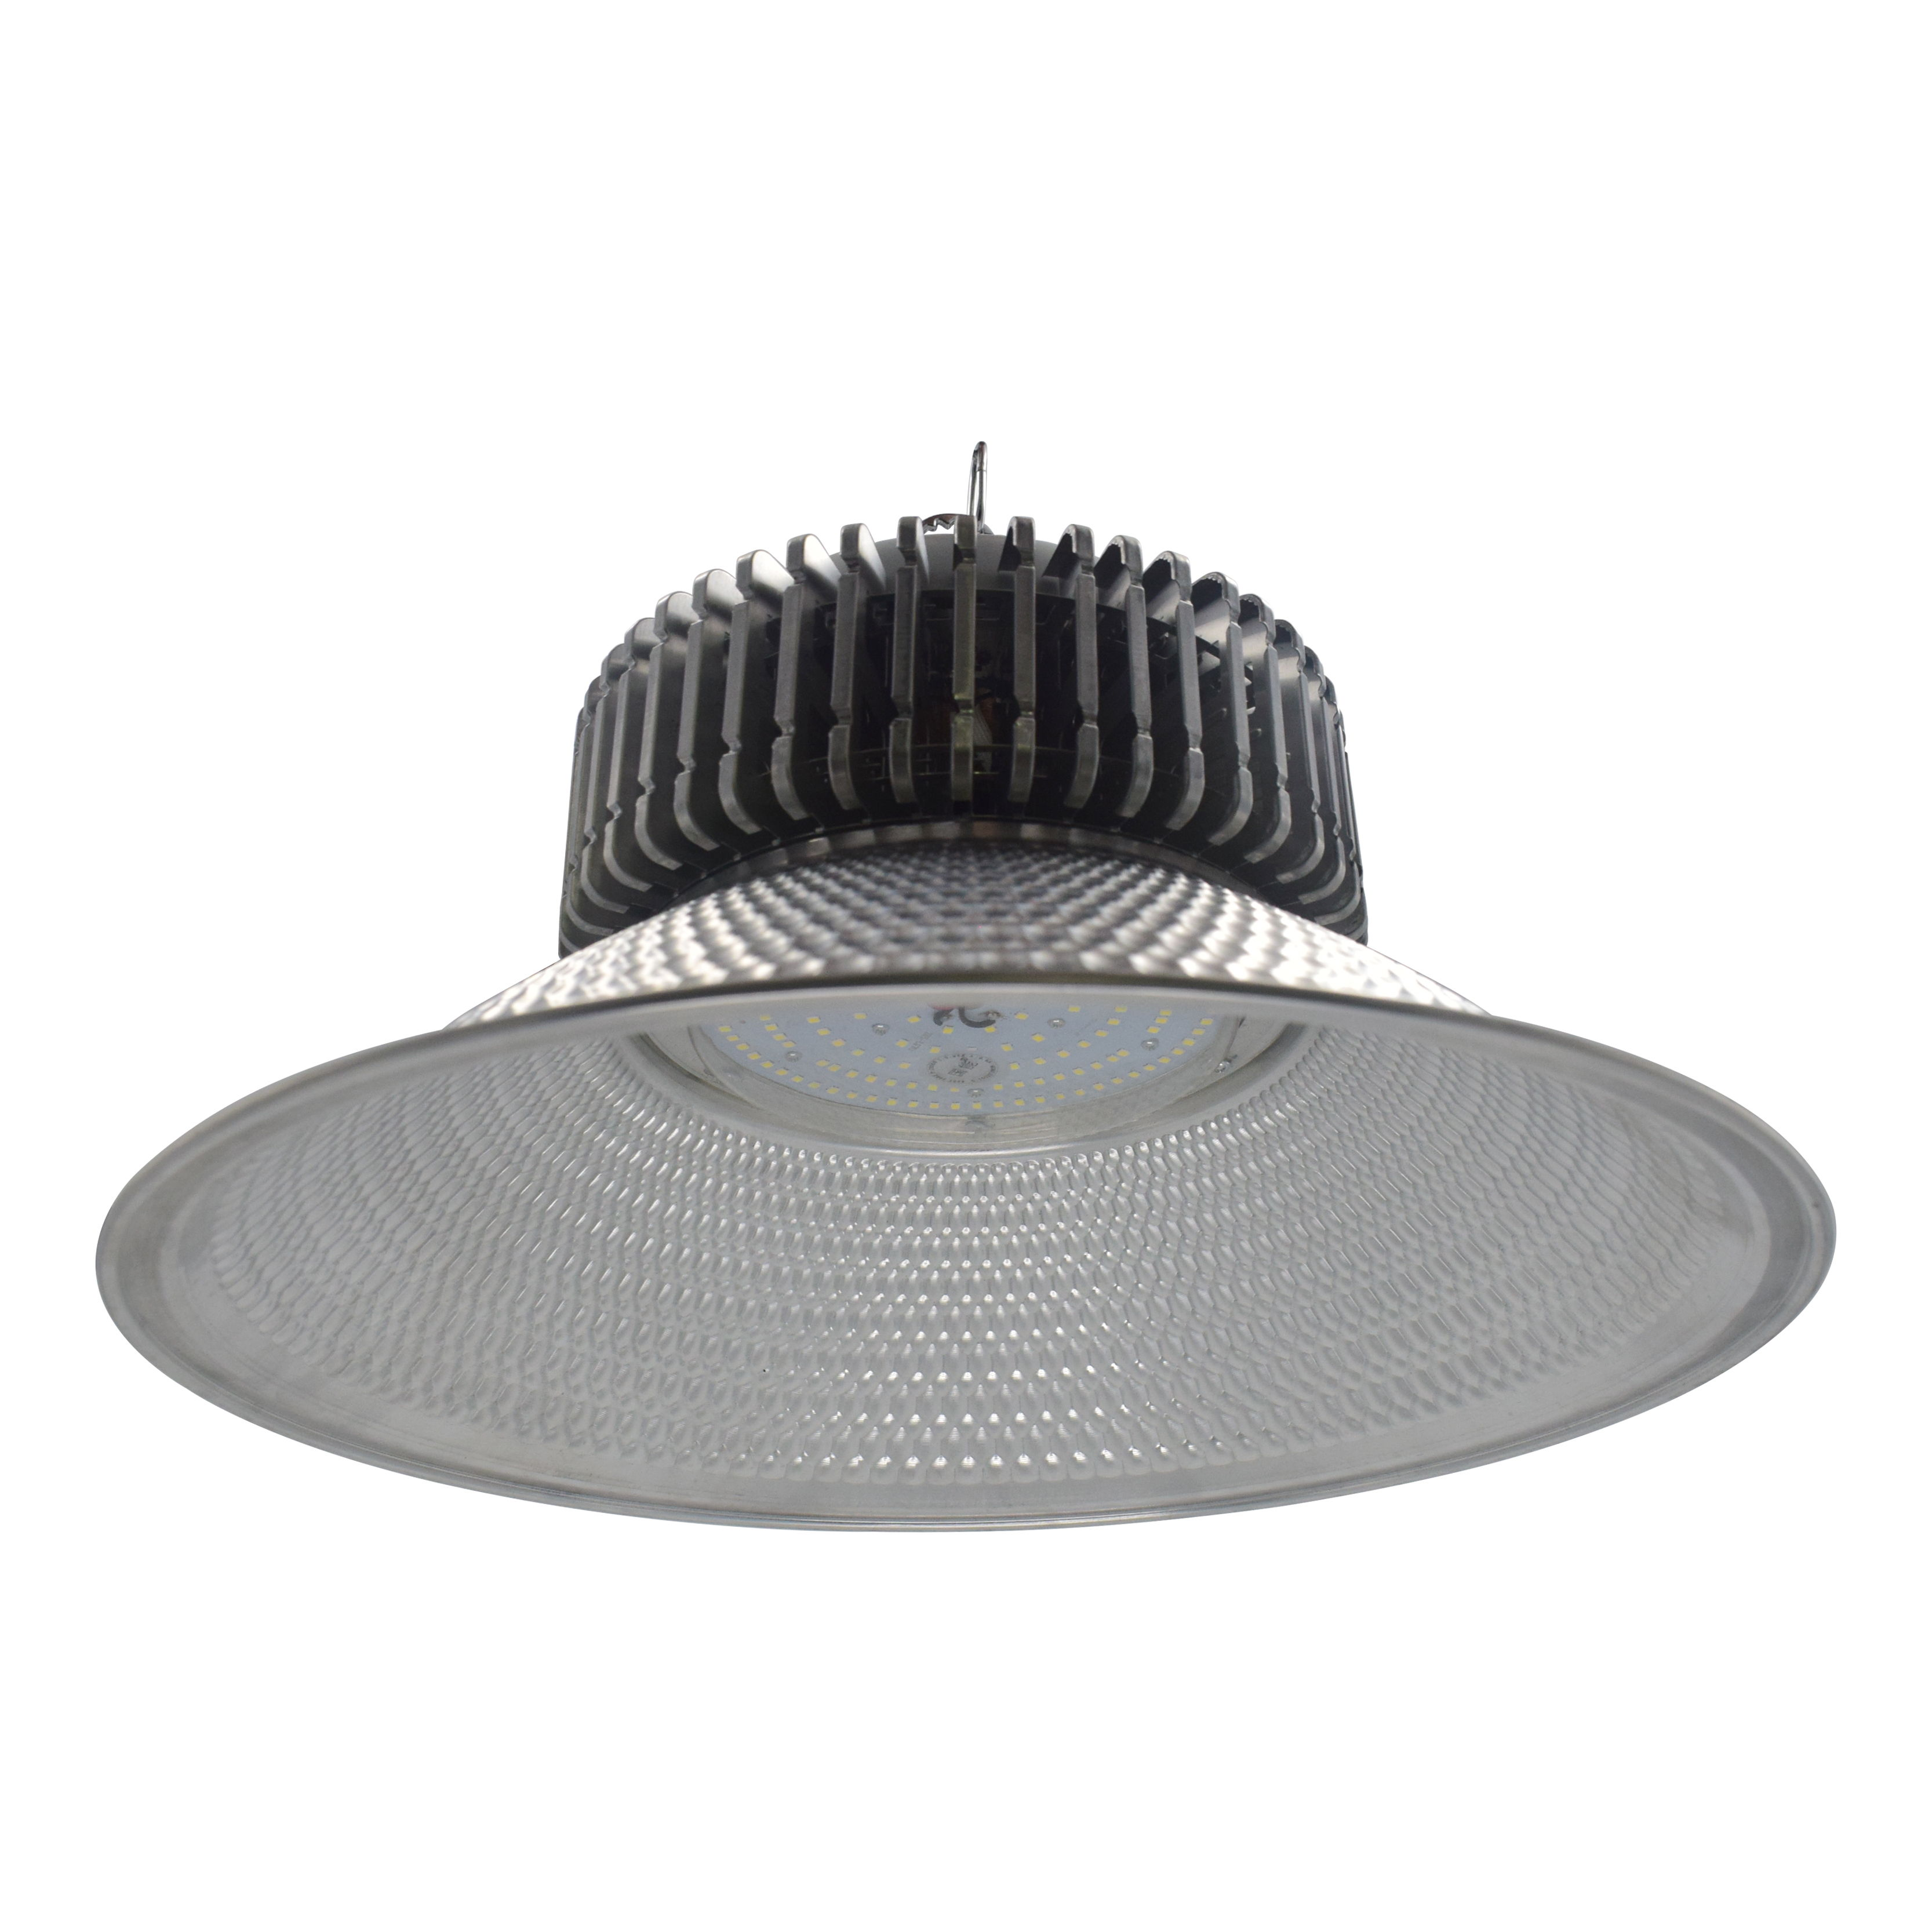 Cheap Factory Price Led High Bay 150w Industrial Led Light 150w High Bay Led Light Made In China In Low Price Buy 150w High Bay Led Light Industrial Led Light Led High Bay